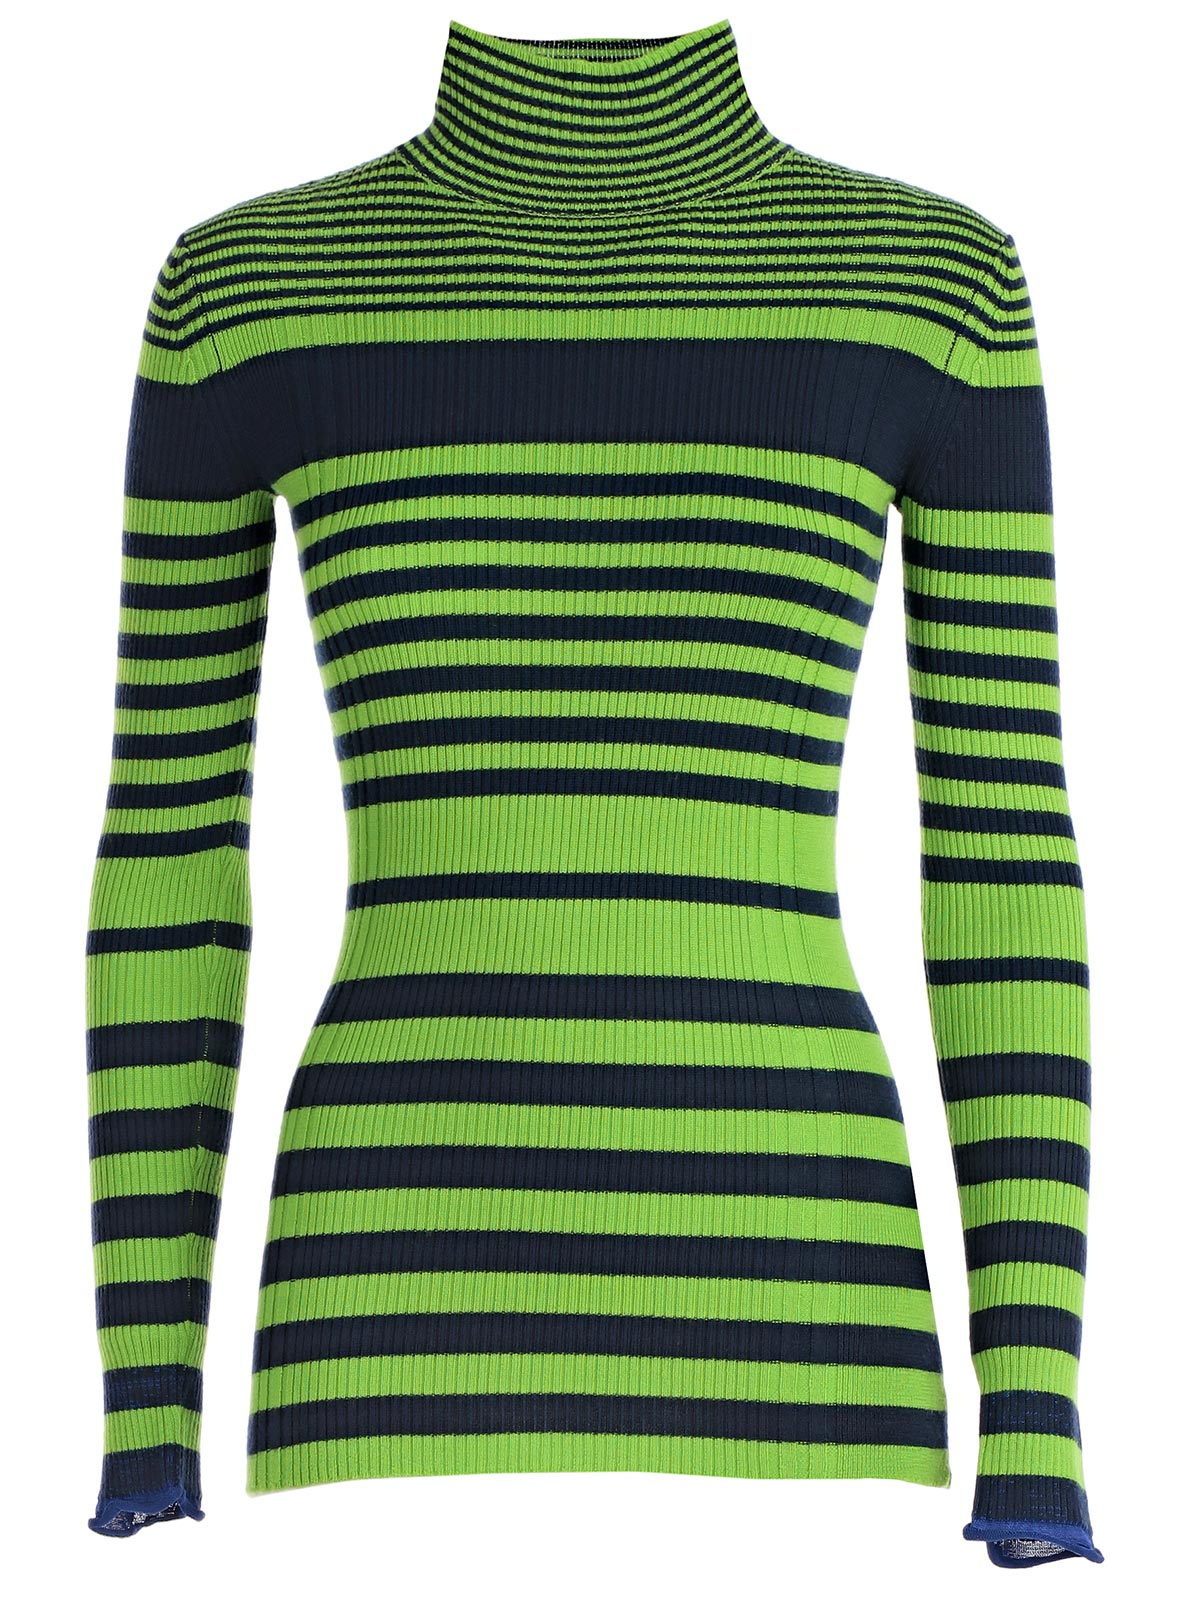 Picture of Victoria, Victoria Beckham Sweater